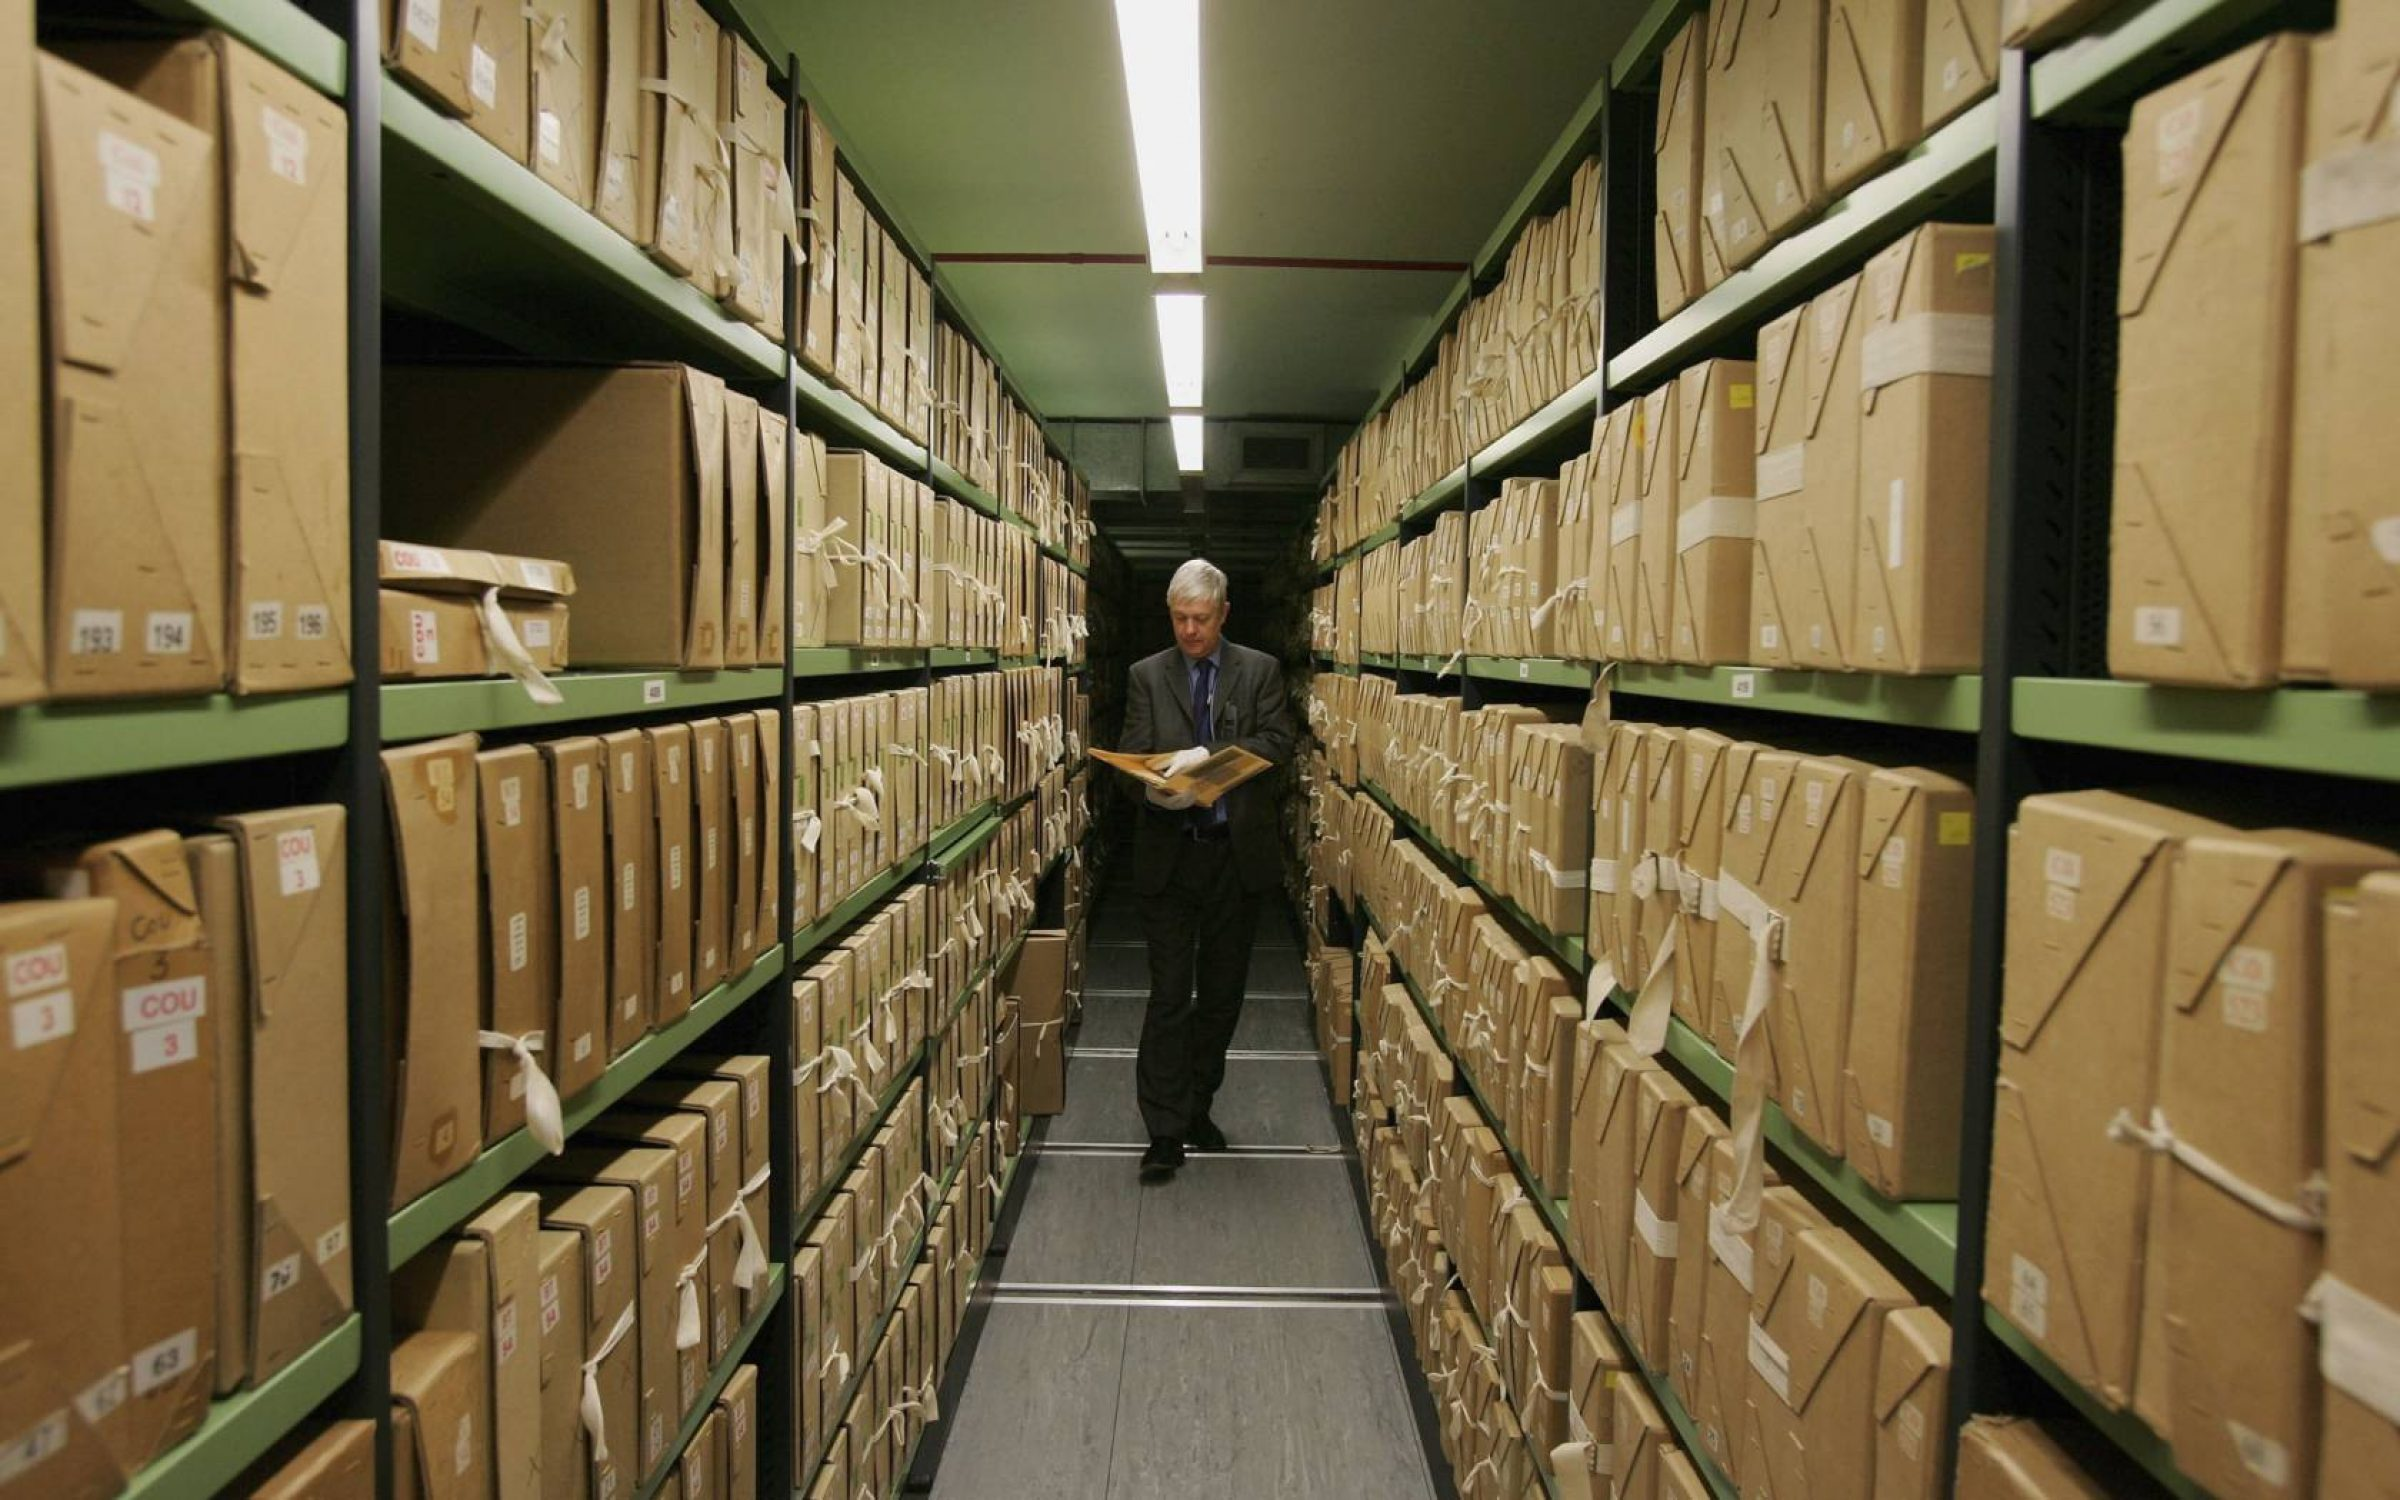 A member of staff removes a file from a depository at The National Archives, London.